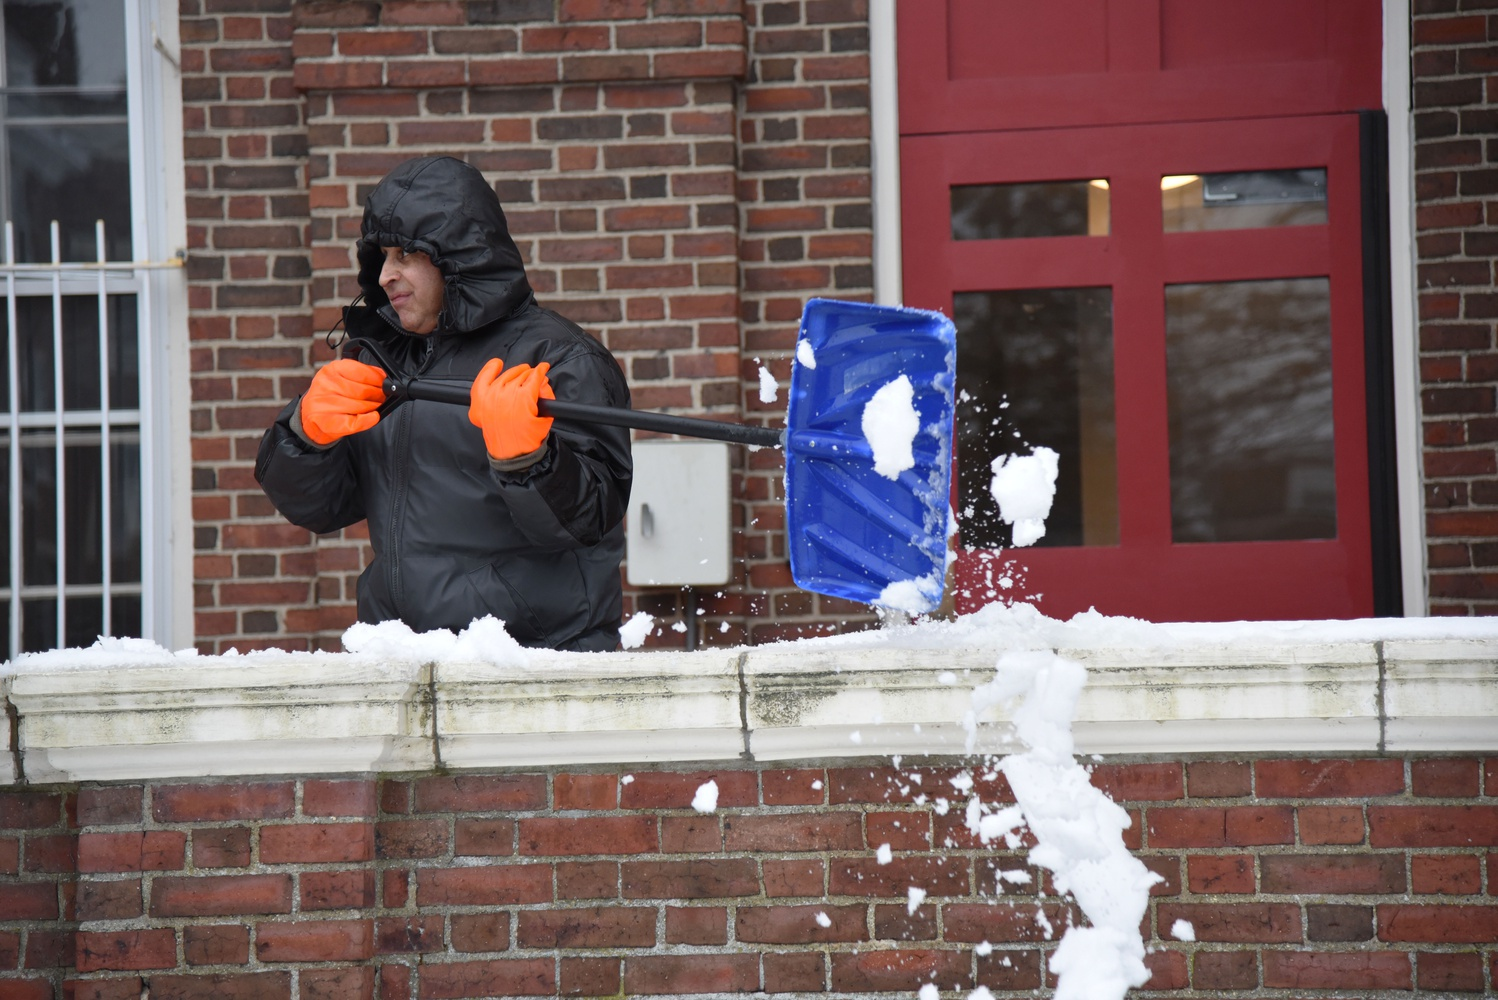 Jose O. Rodriguez shovels snow off a balcony of Cabot House Tuesday afternoon.